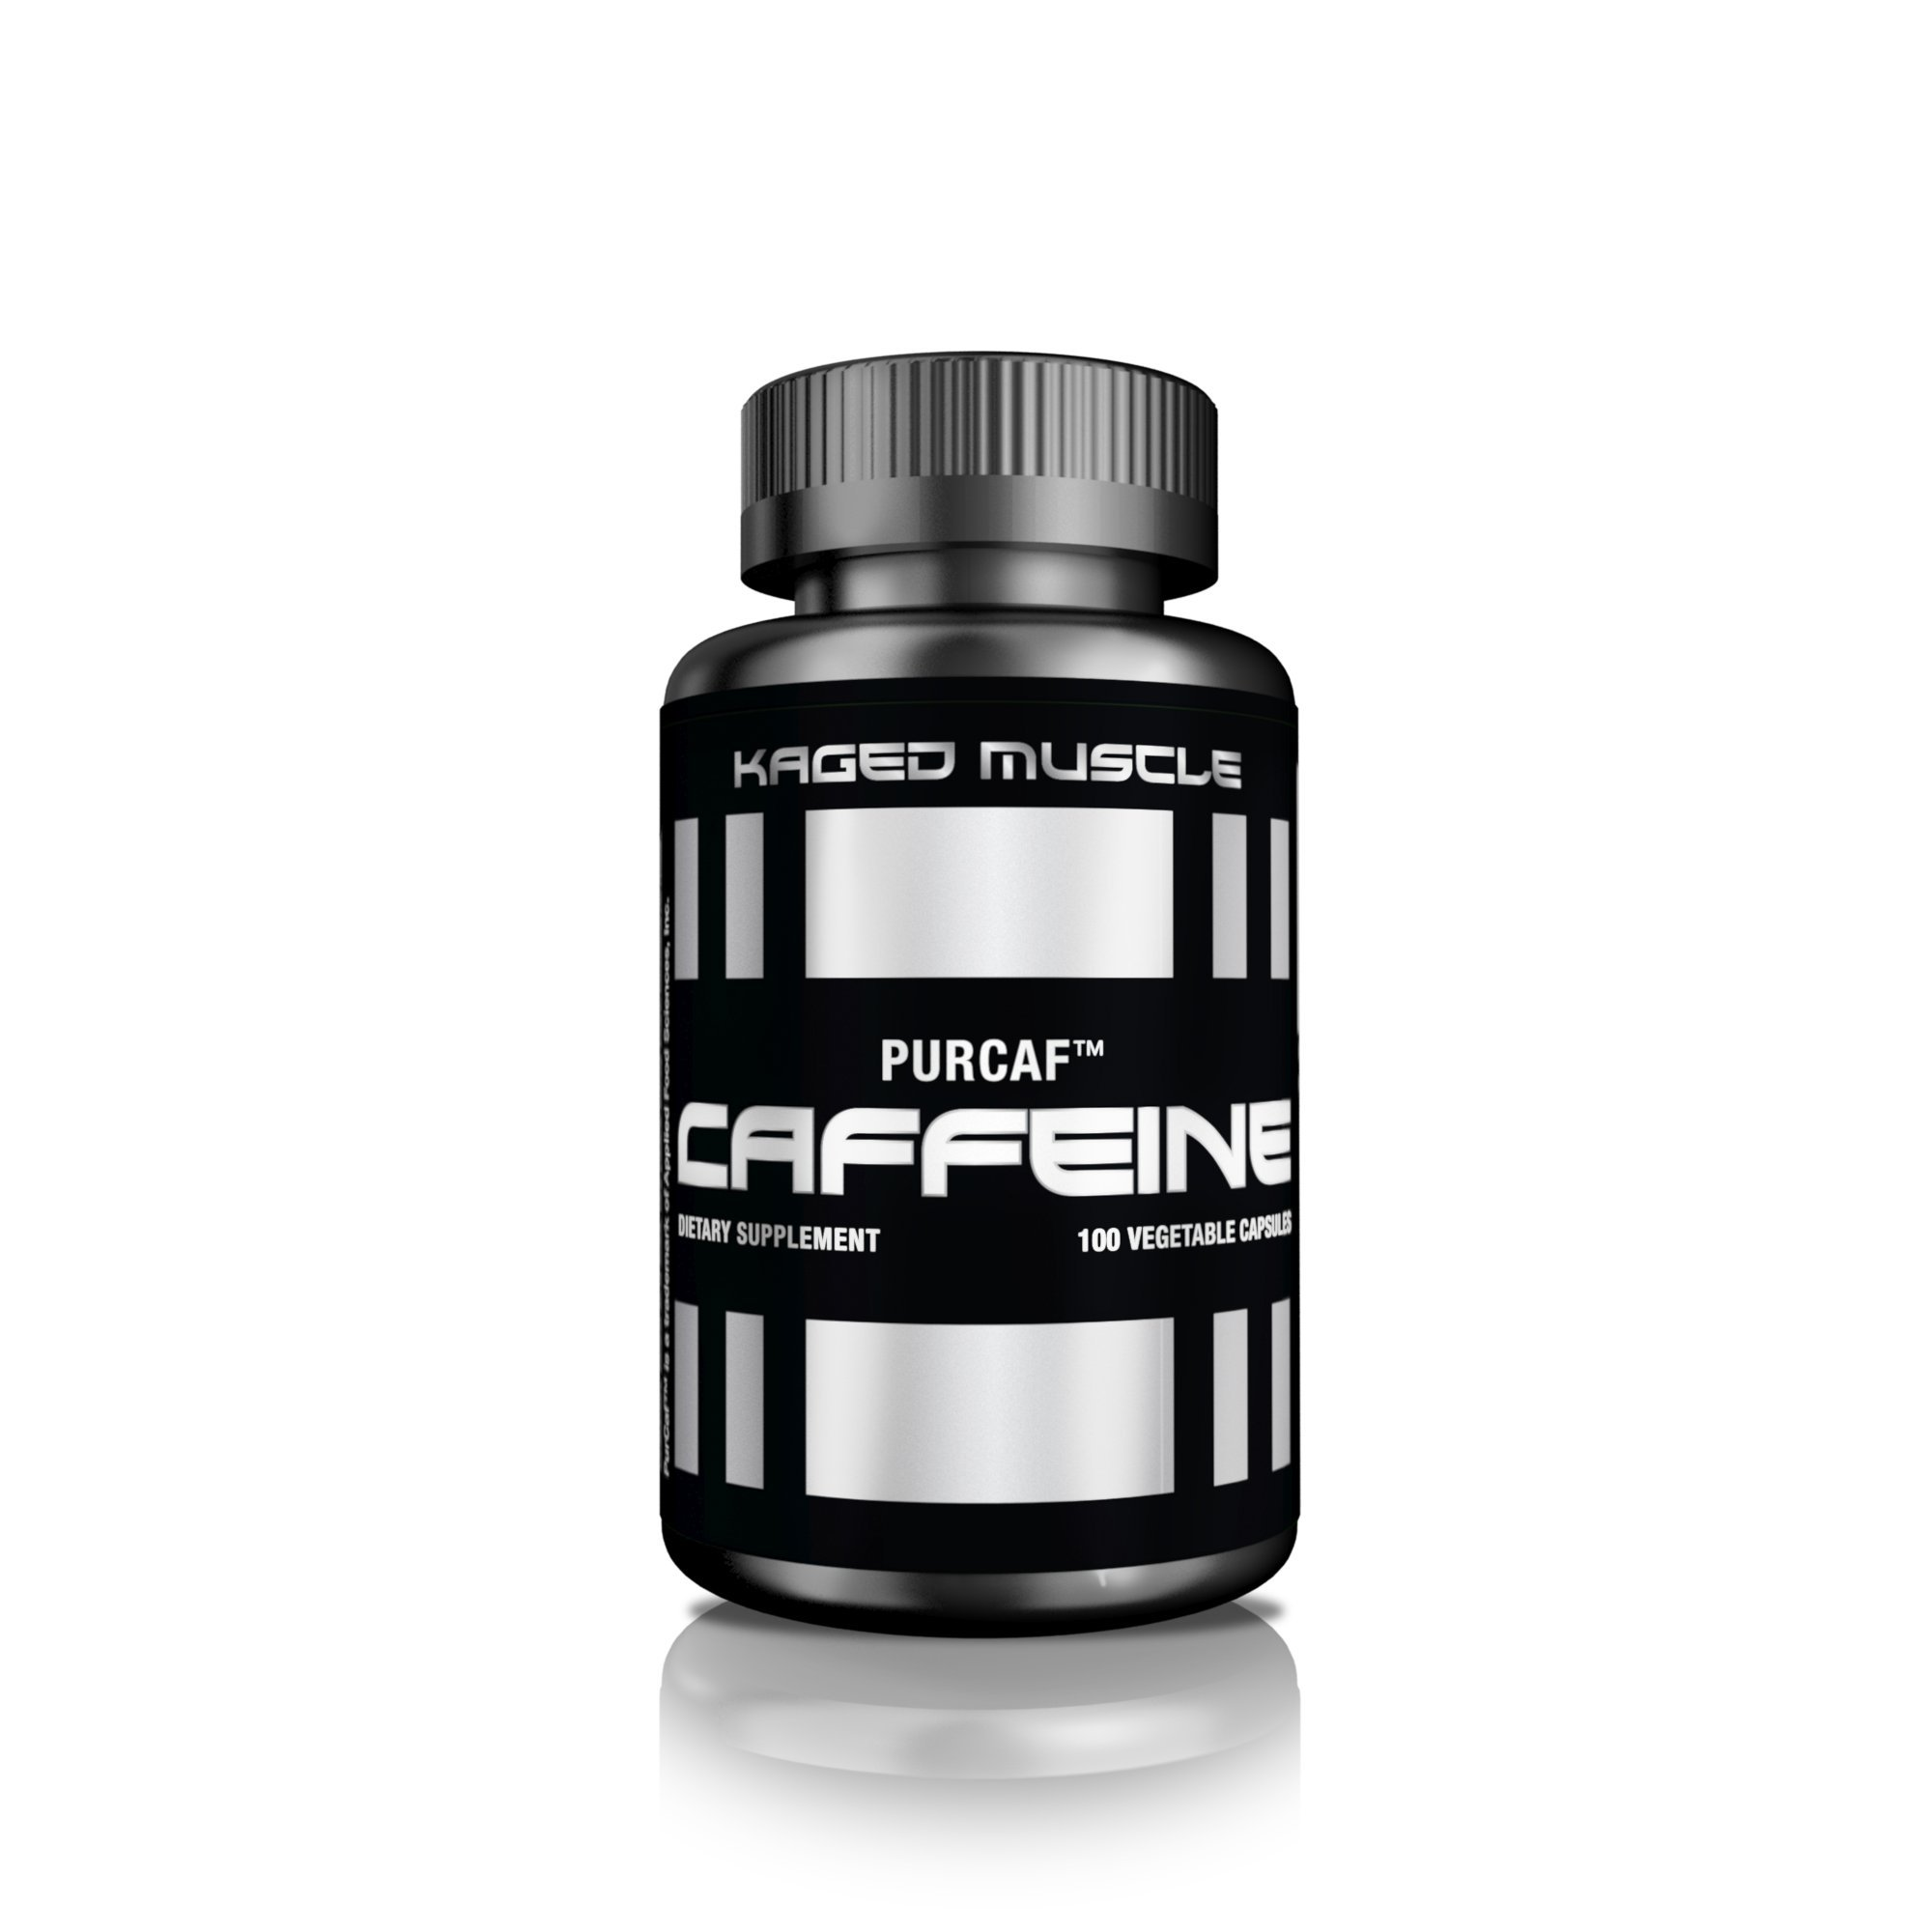 Clean Burn Stimulant Free Fat Burner Weight Loss Low Jitter Sige Vcsos Kaged Muscle Purcaf Organic Caffeine Capsules 100 Servings Smooth Energy Boost